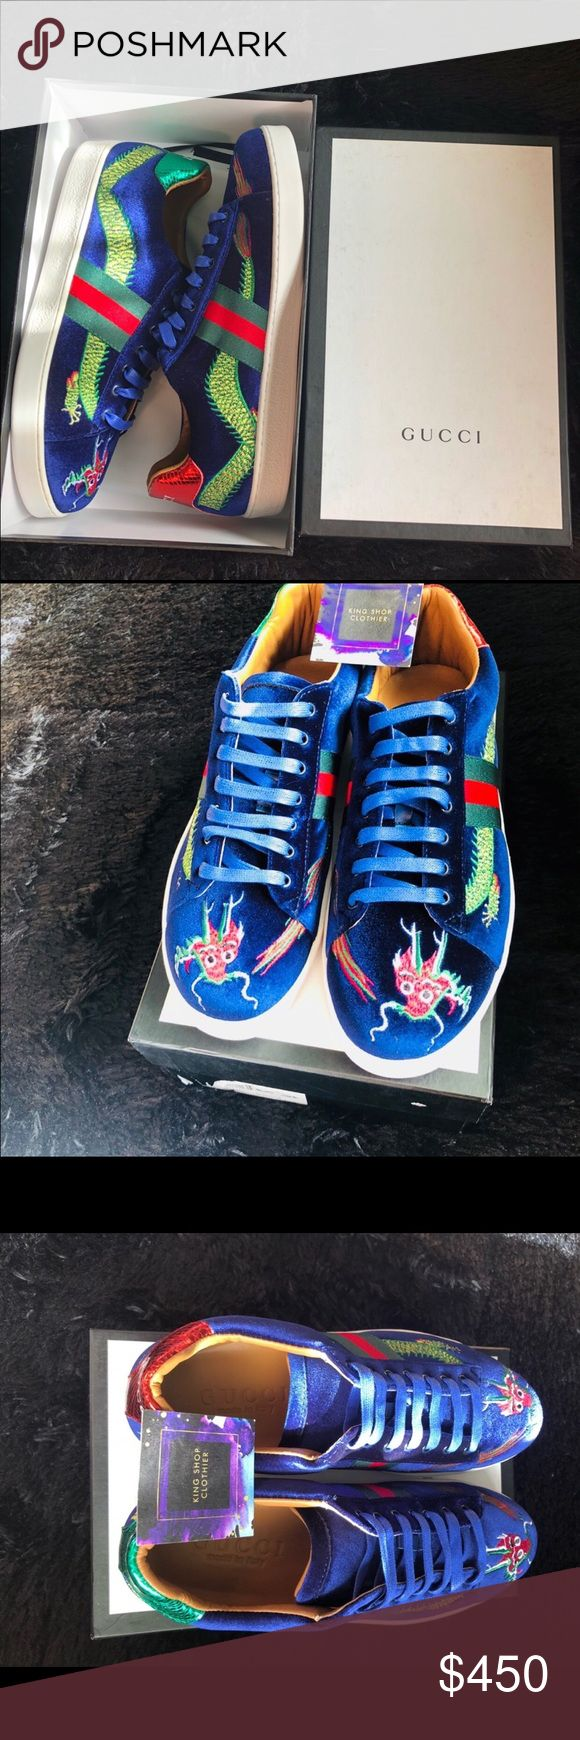 Gucci shoes If Interested Text My Number 708-792-0232 TO purchase send size and picture. Also for negotiating price contact me 708-792-0232 🅿️🅿️250$ Gucci Shoes Sneakers